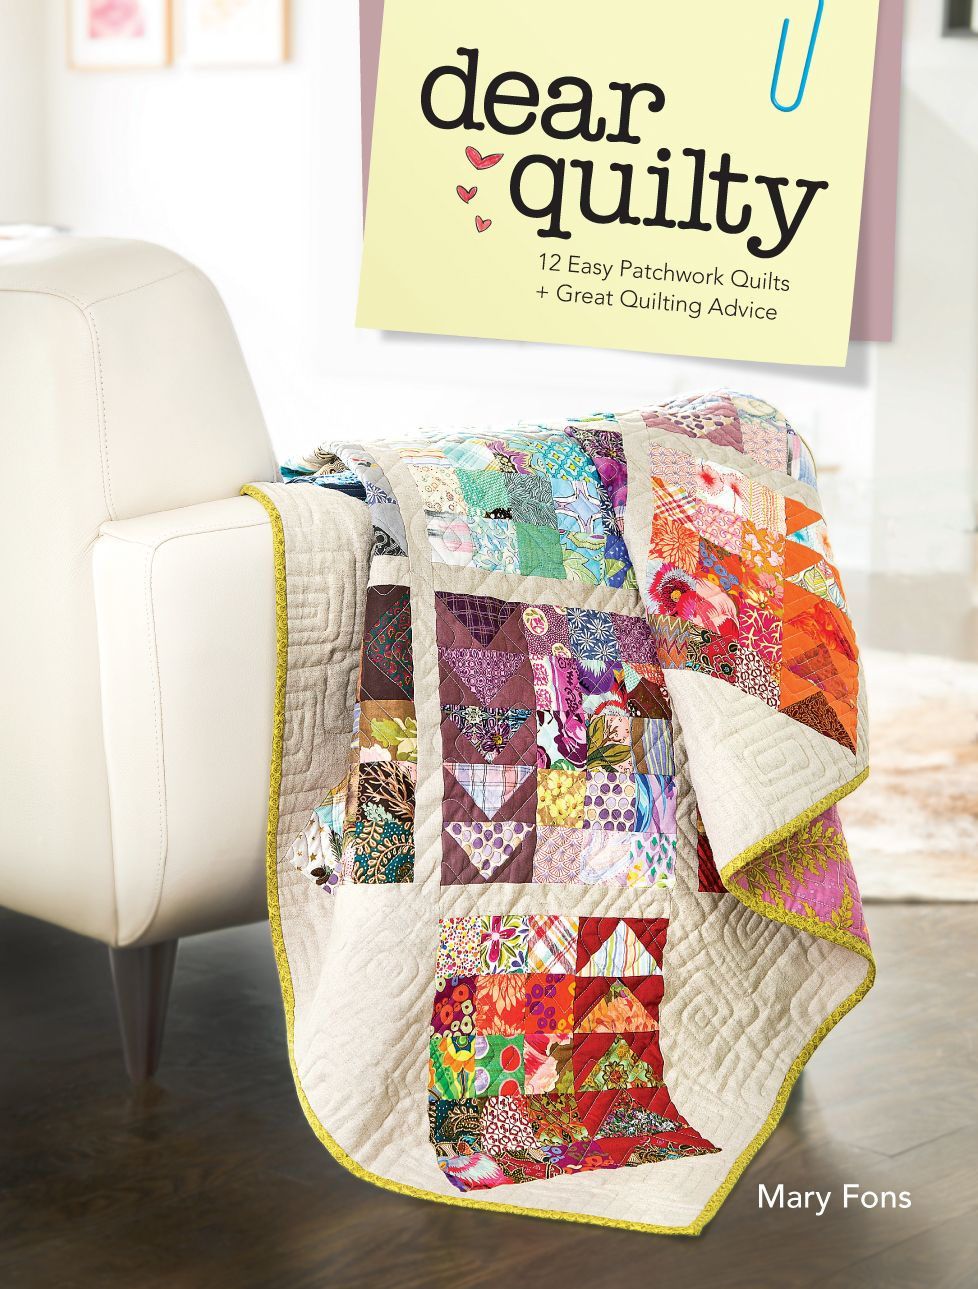 About Fons & Porter, a Division of Quilt pattern book